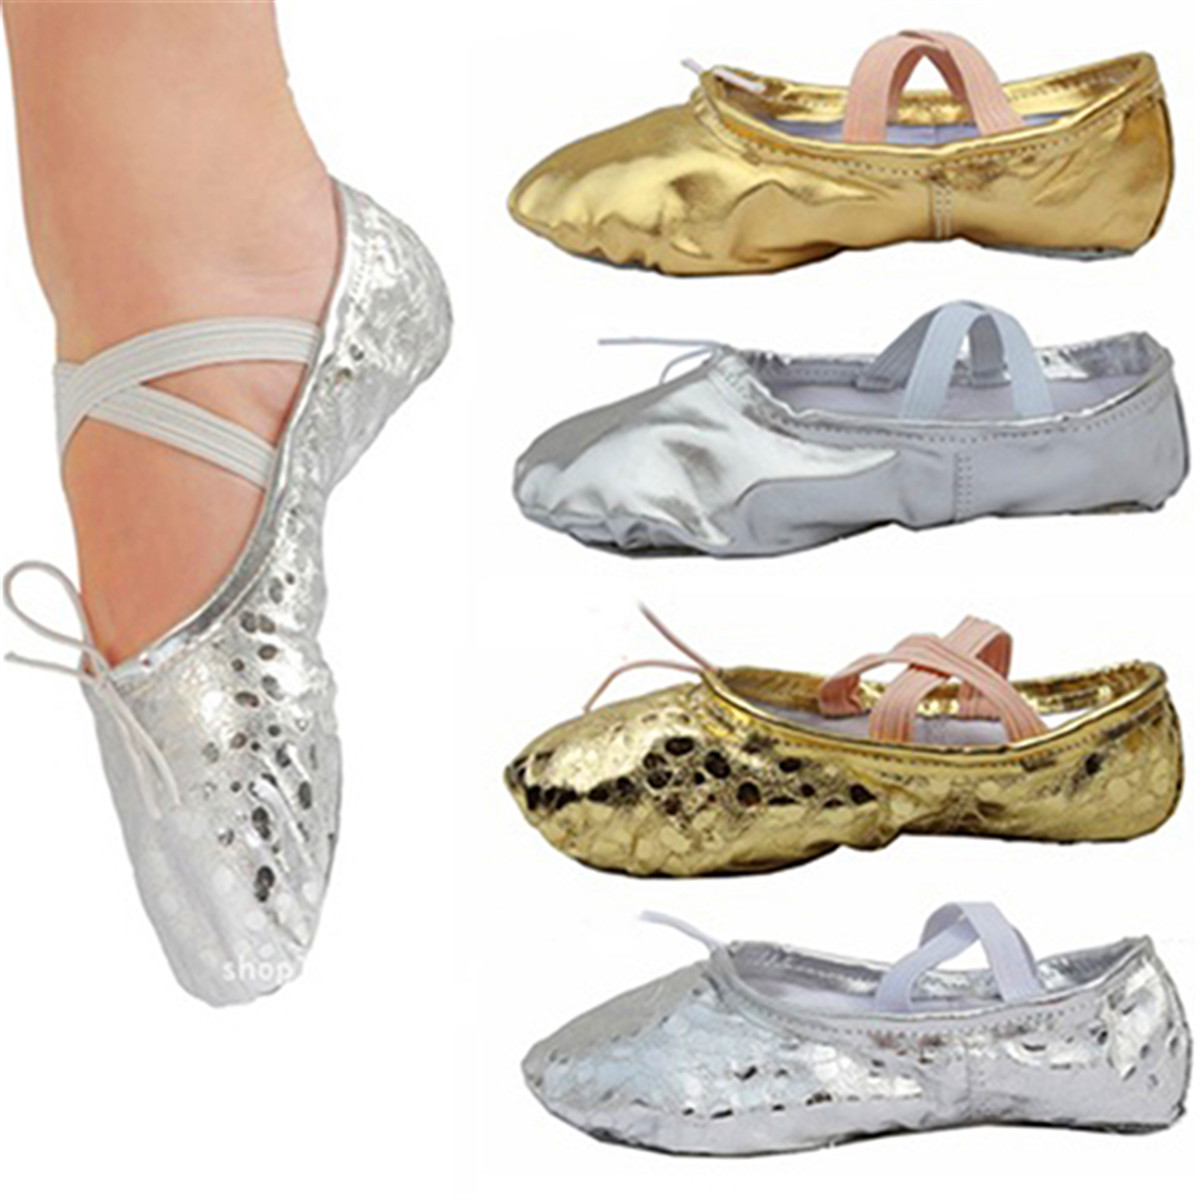 Fashion Women Girls  Adult Pointe Gymnastics Sequins Faux Leather Ballet Shoes Cute Soft Art Gym Accessories